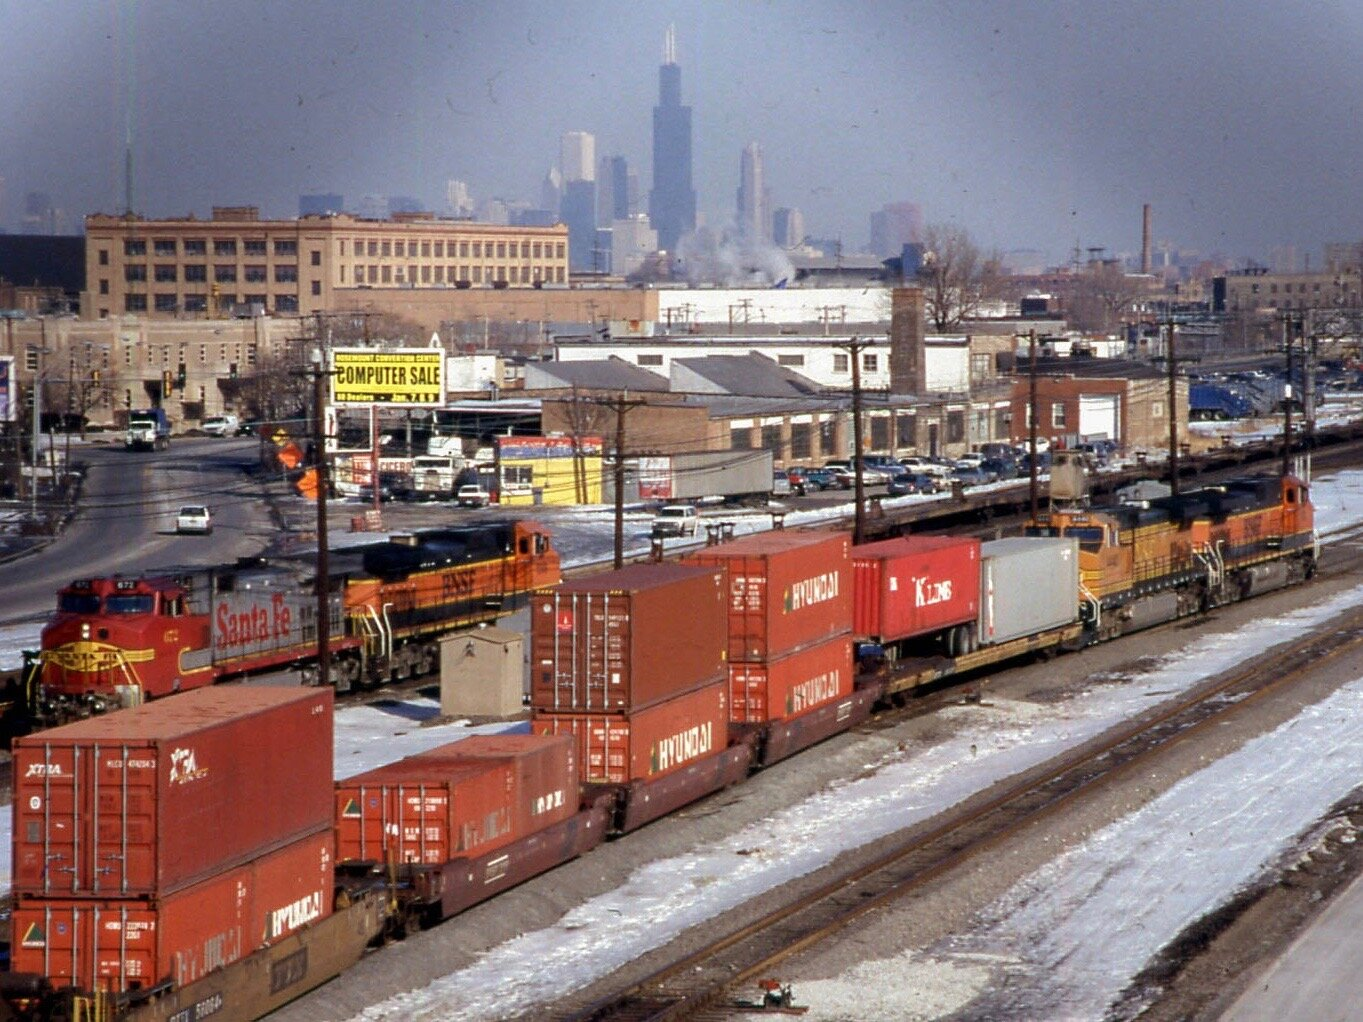 The Chicago skyline looms in the distance over the BNSF International rail yard in Cicero in a 2000 photo. (Flickr/David Wilson)